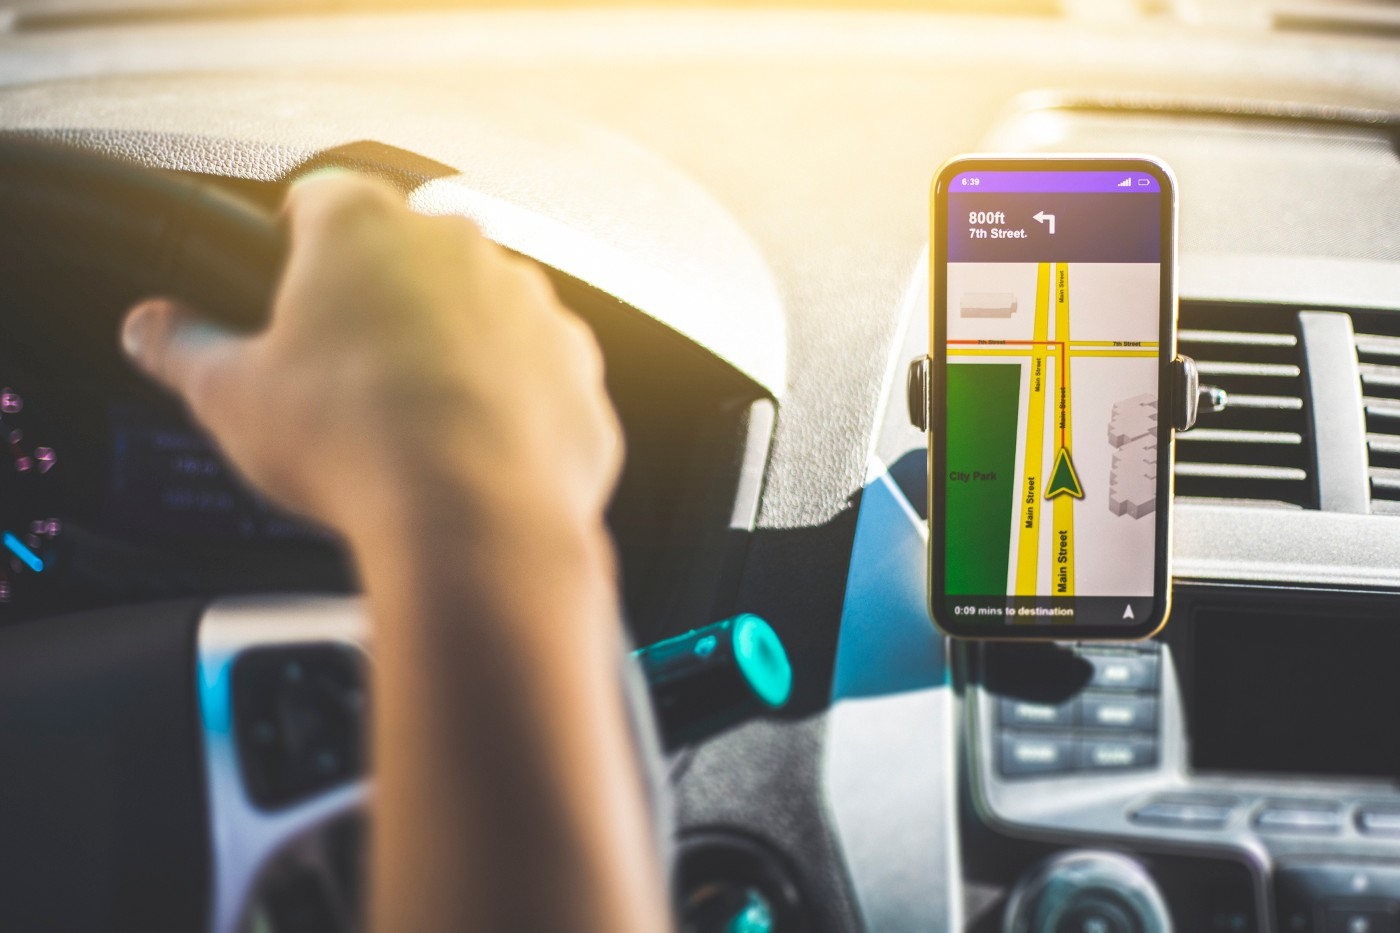 https://tickertapecdn.tdameritrade.com/assets/images/pages/md/Navigating with GPS while driving: Uber/Lyft earnings